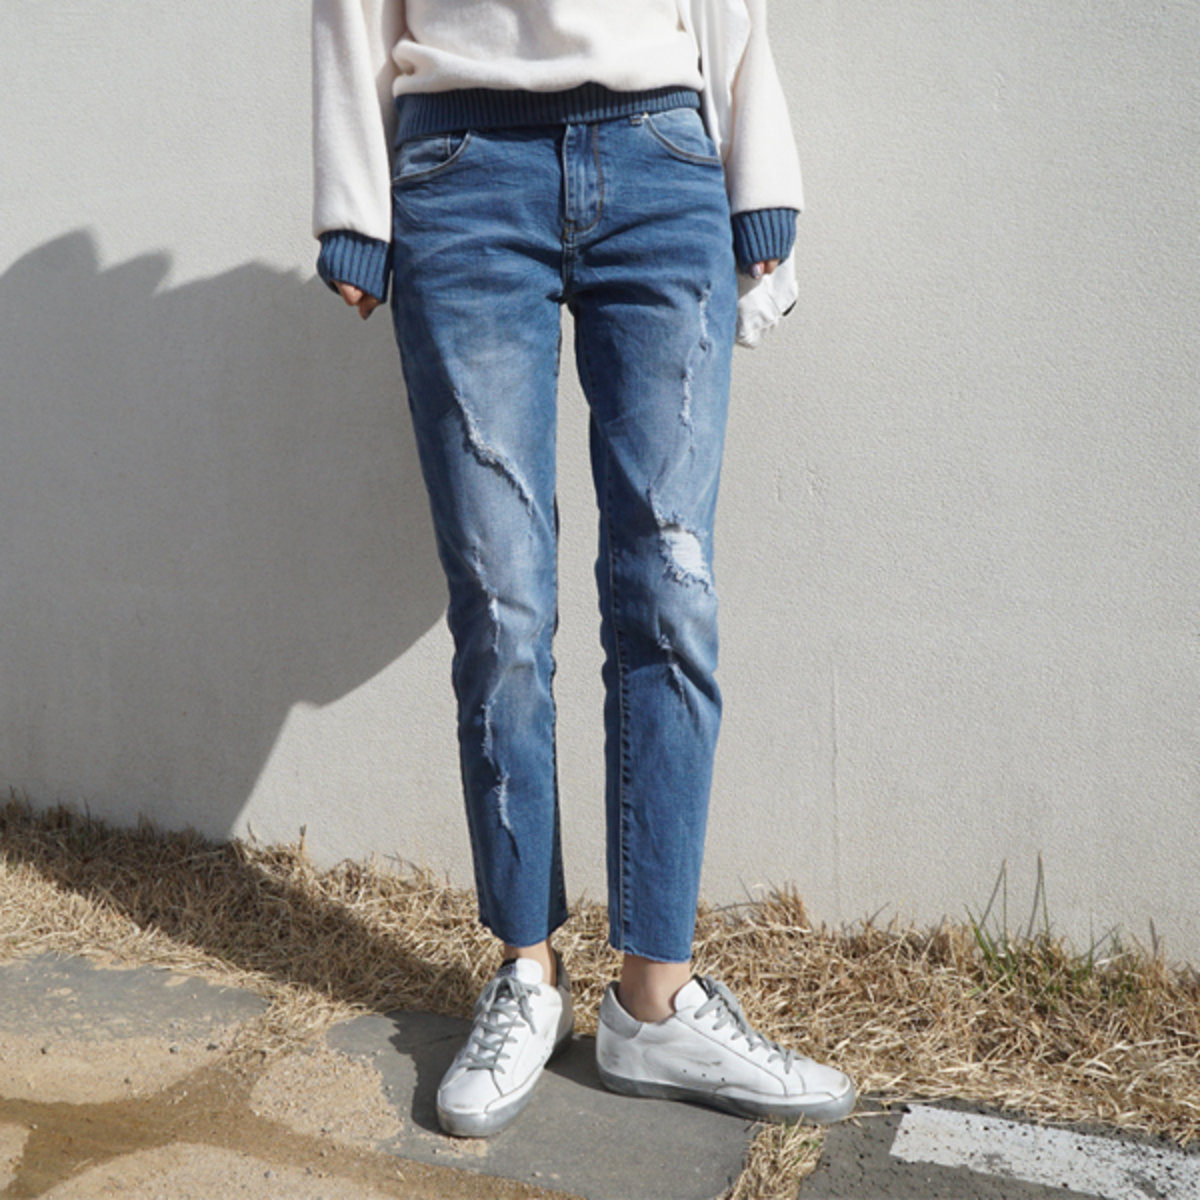 Na3003 Women'S Baggy Jeans